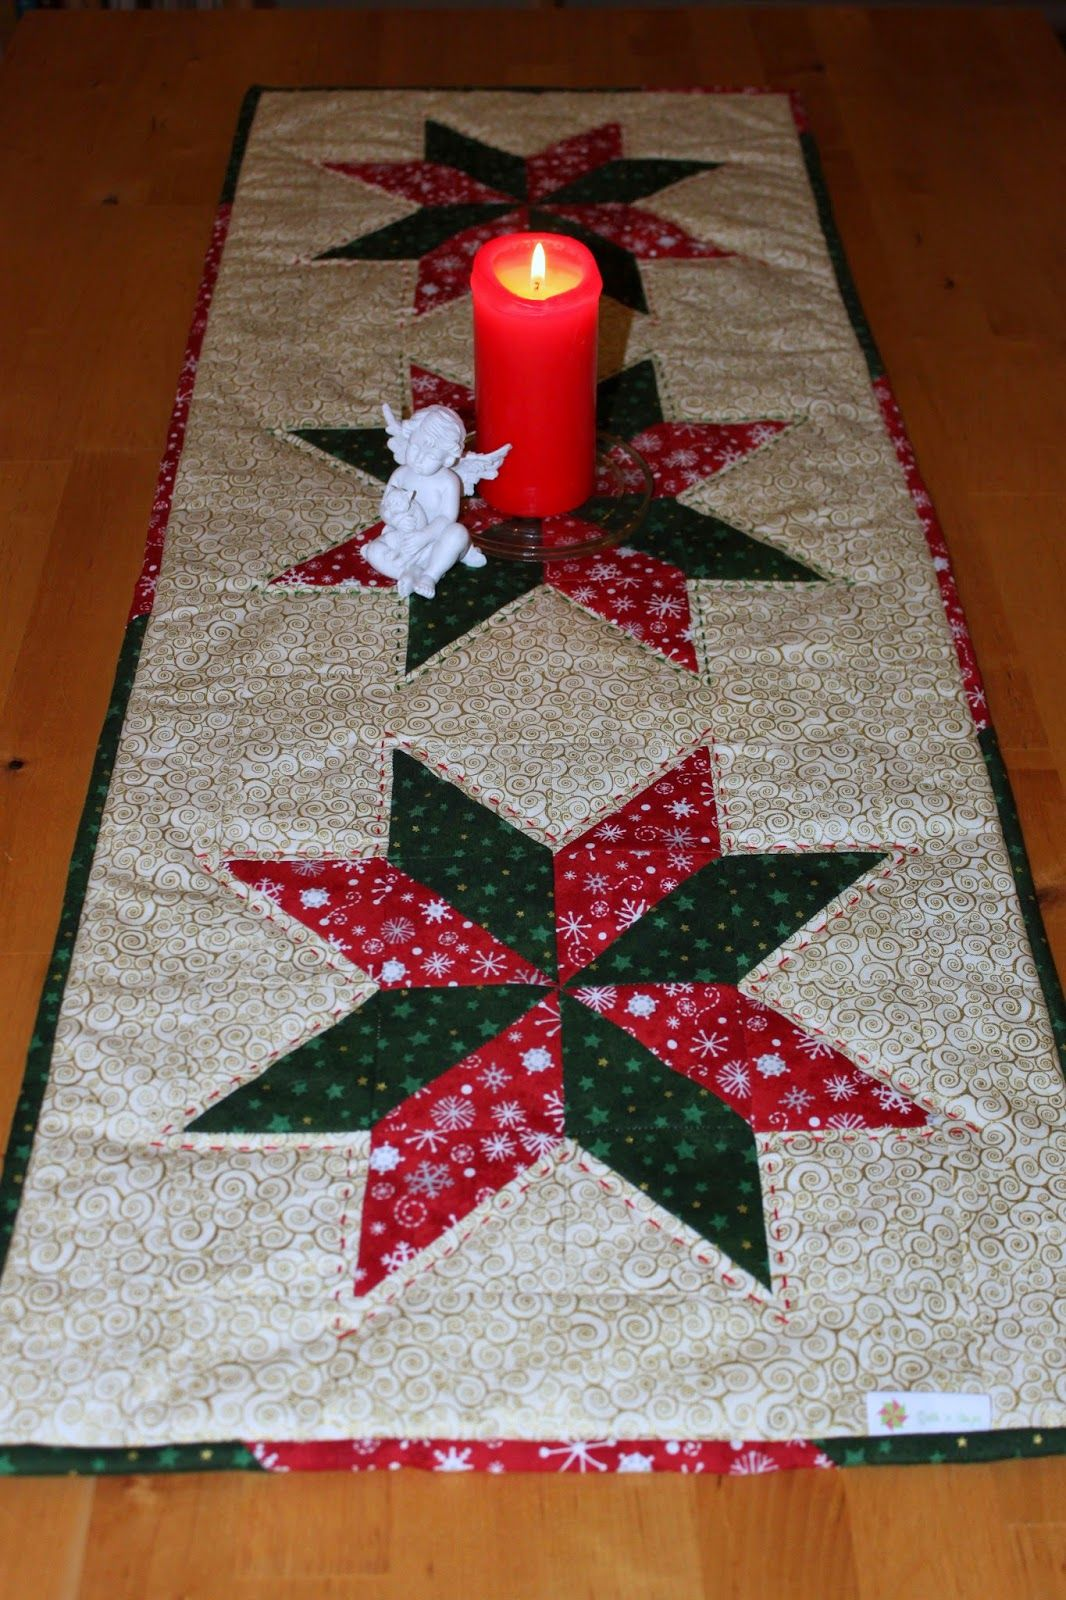 green & red Christmas table runner | Tischläufer für Weihnachten in ...